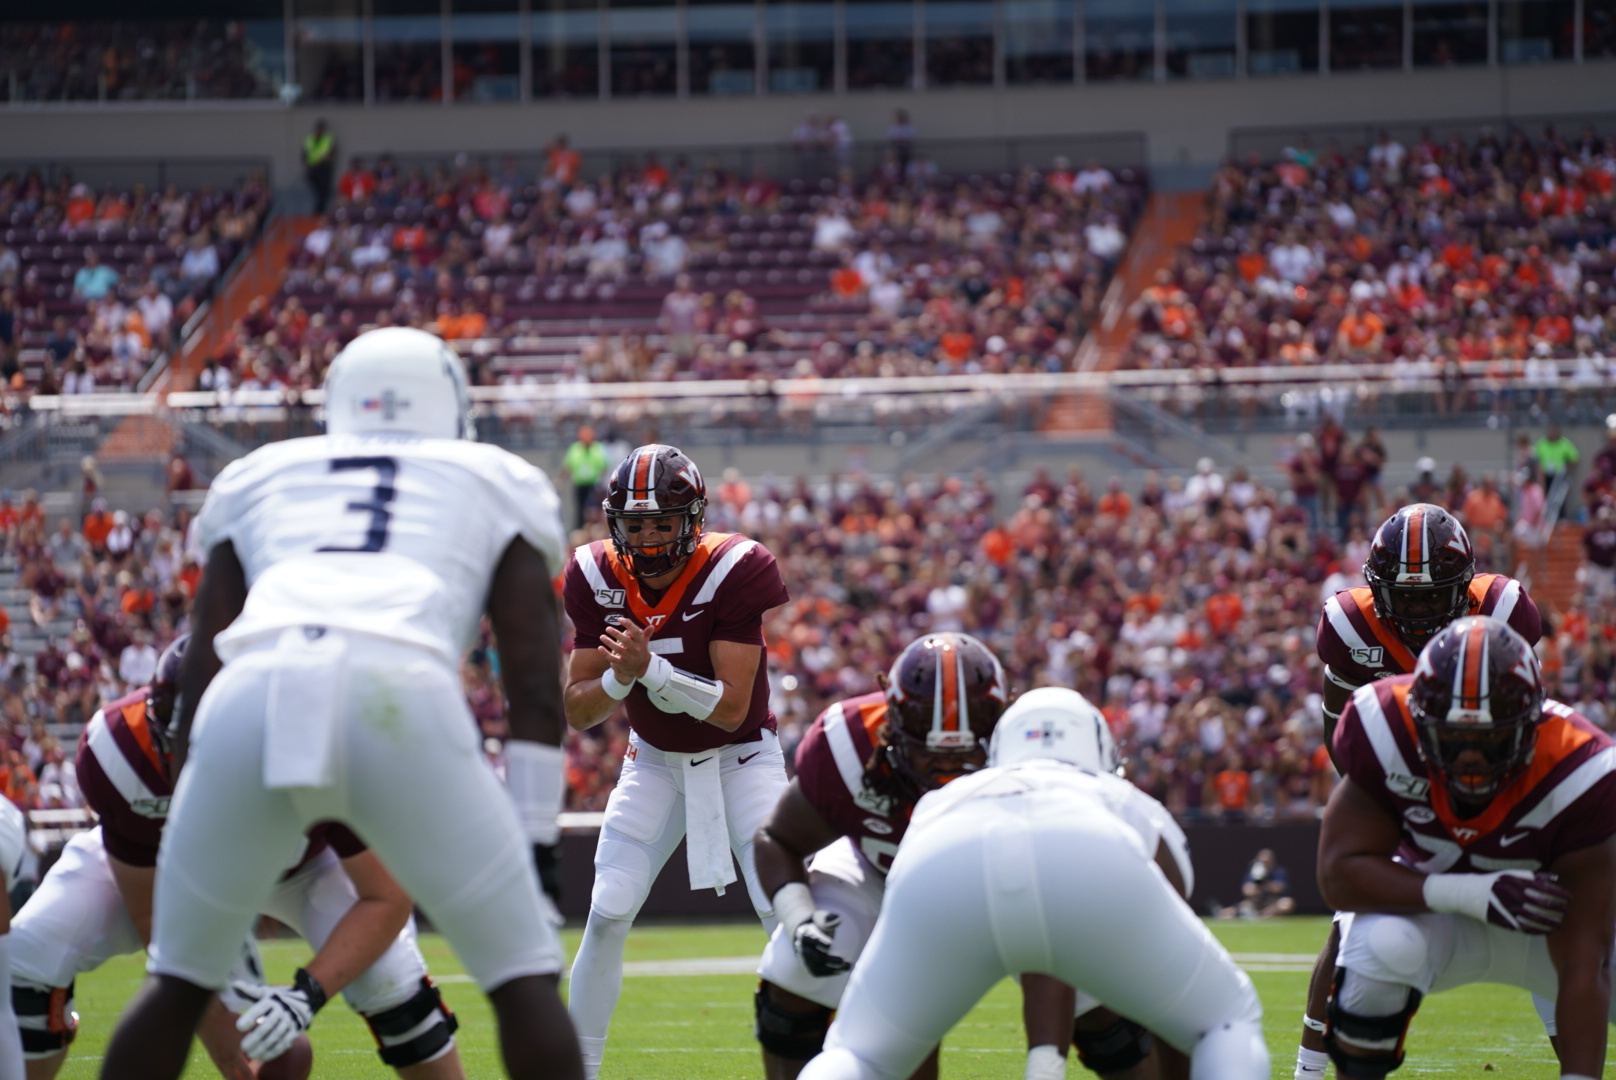 The Good, Bad, and Ugly From Virginia Tech's 31-17 Win Over Old Dominion